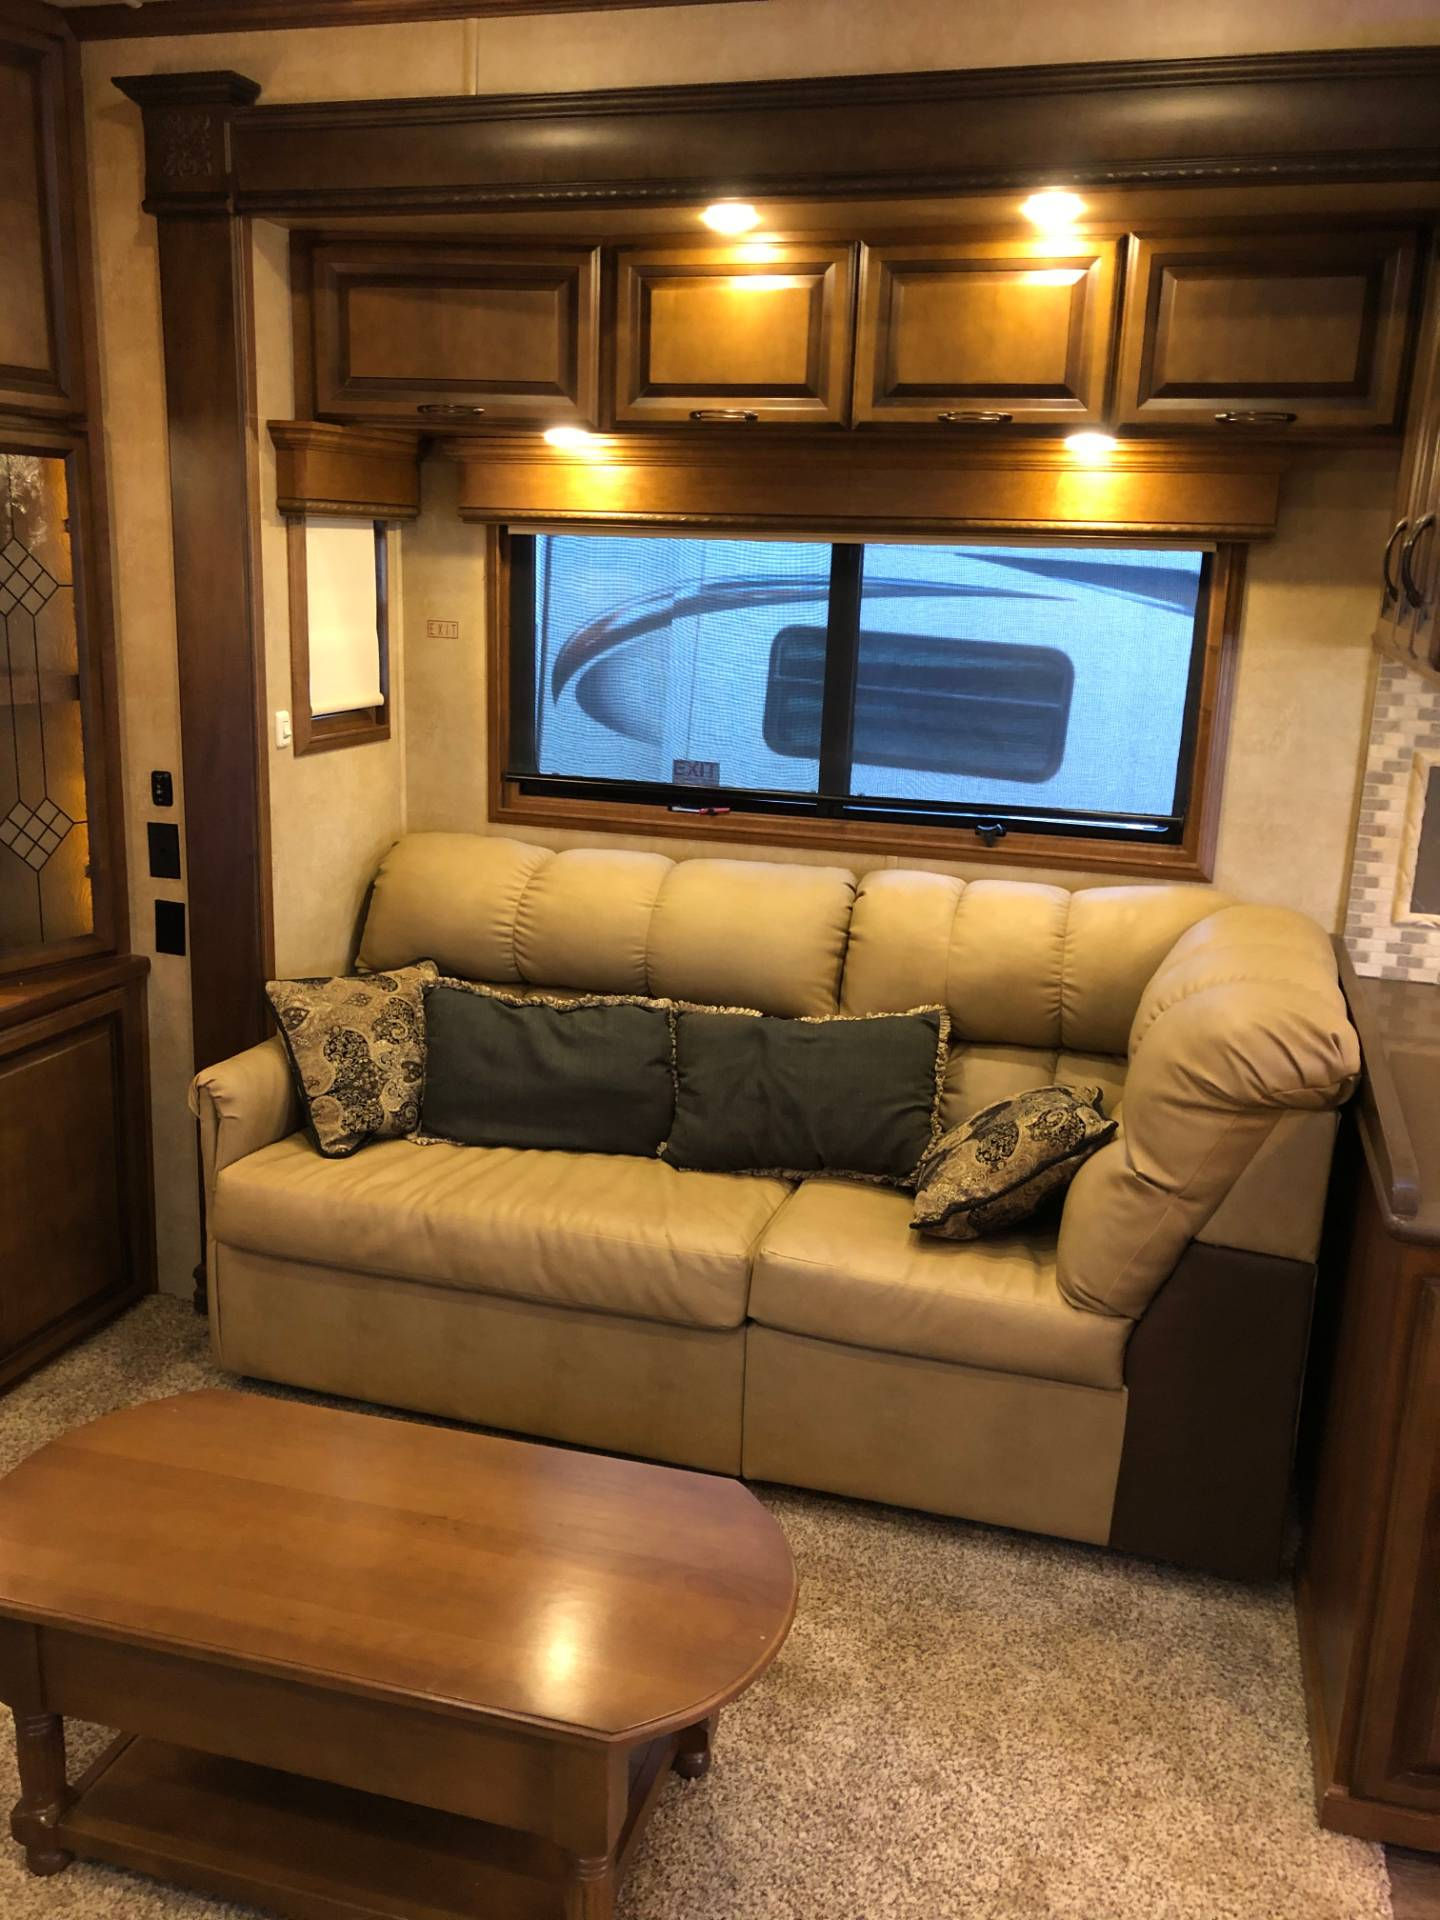 2014 DRV Mobile D Suites 39RESB3 in Wolfforth, Texas - Photo 18